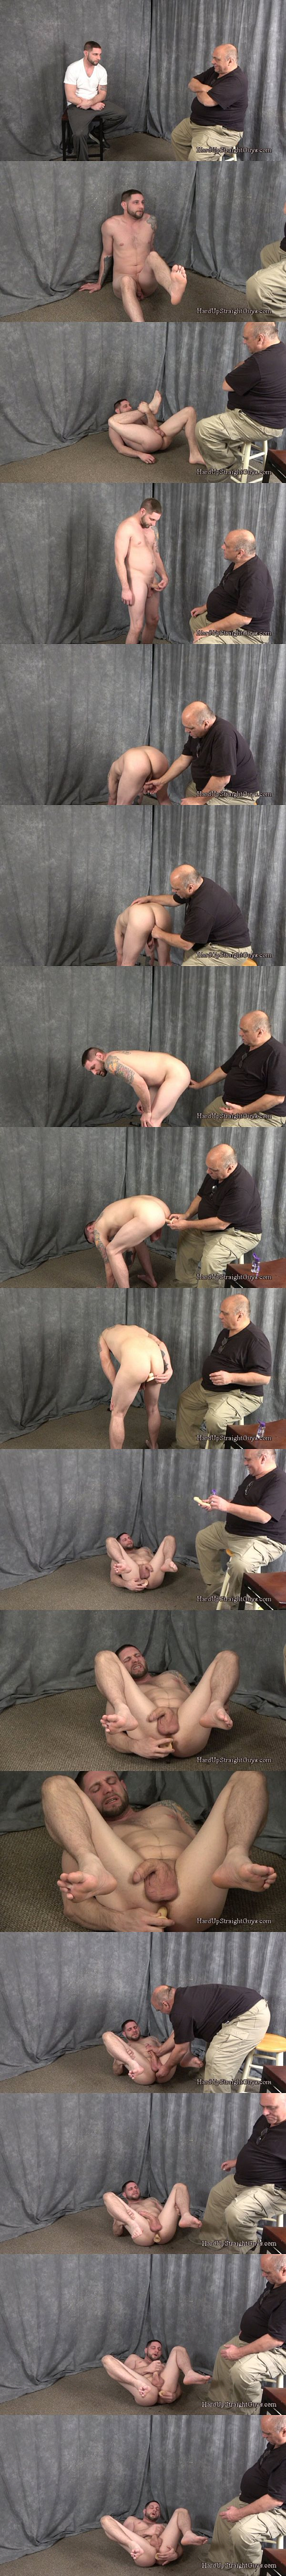 Hung Cocky straight guy Jay Rising dildo fucks the cum out of himself at Hardupstraightguys 02